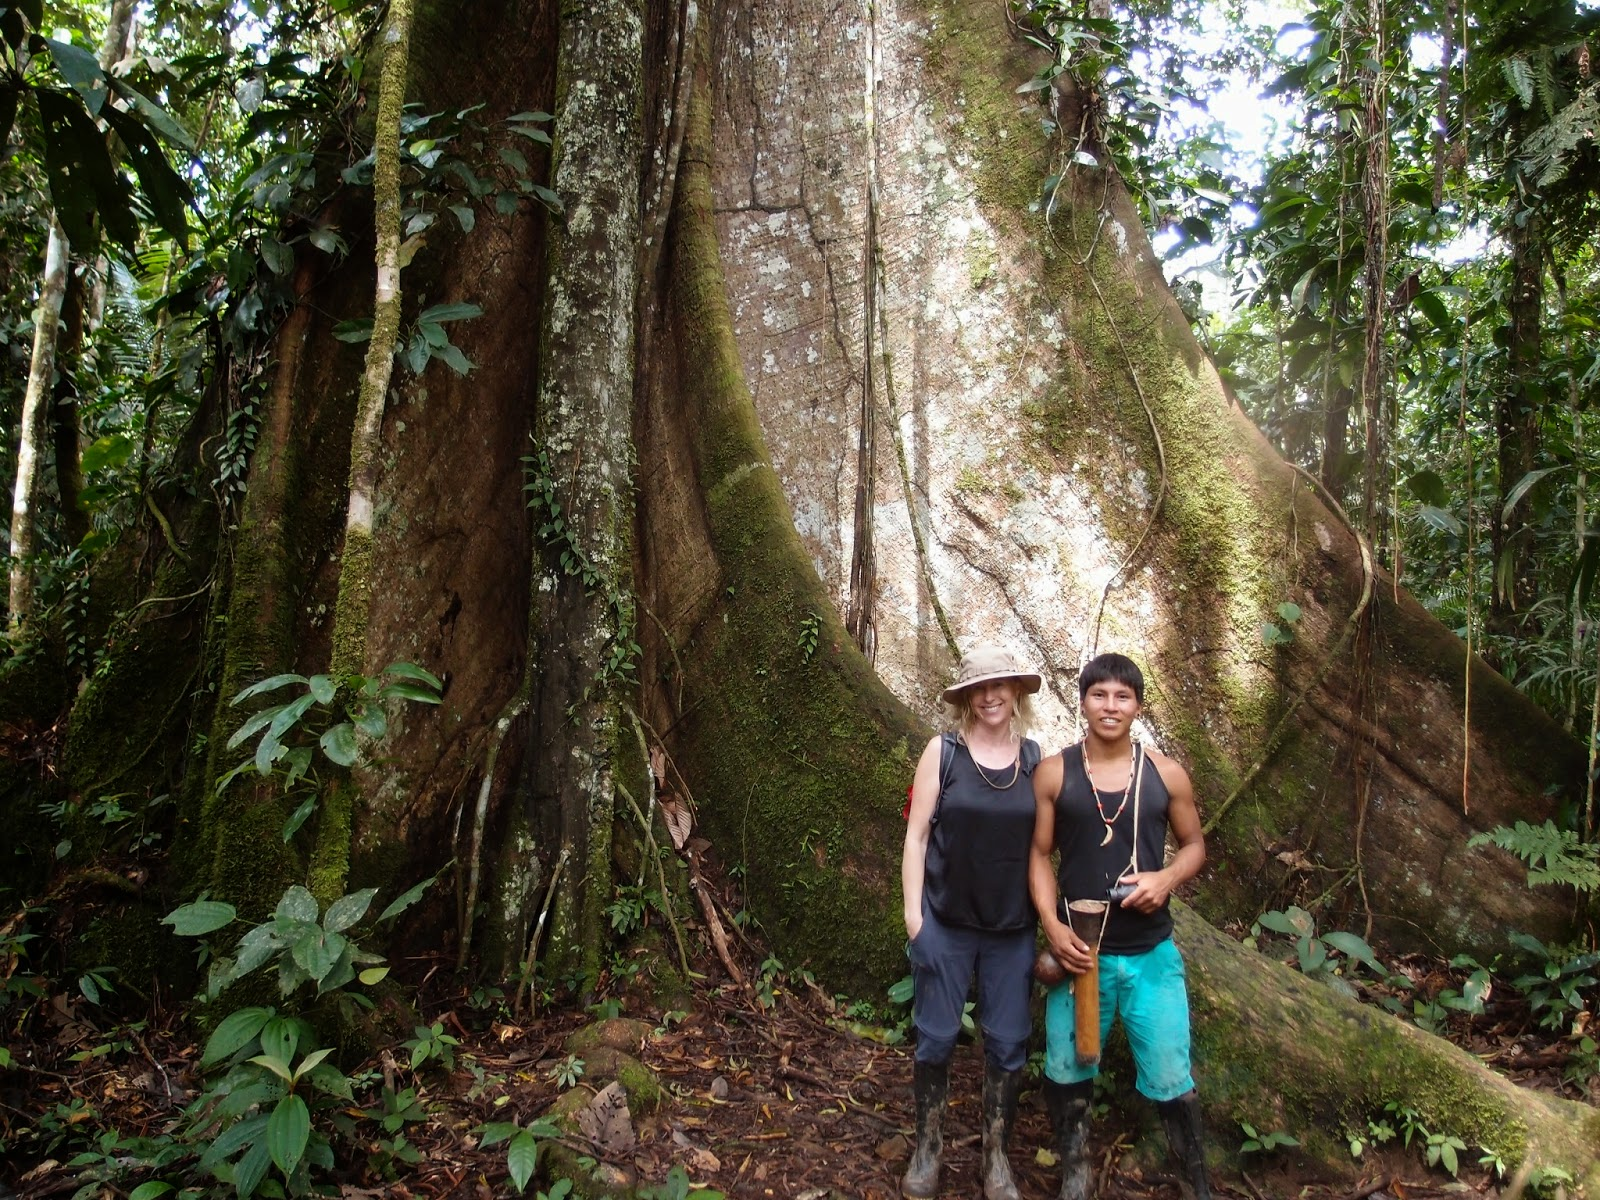 Pegonka and Laura with a ceiba tree in the Huaorani territory of the Amazon rain forest in Ecuador